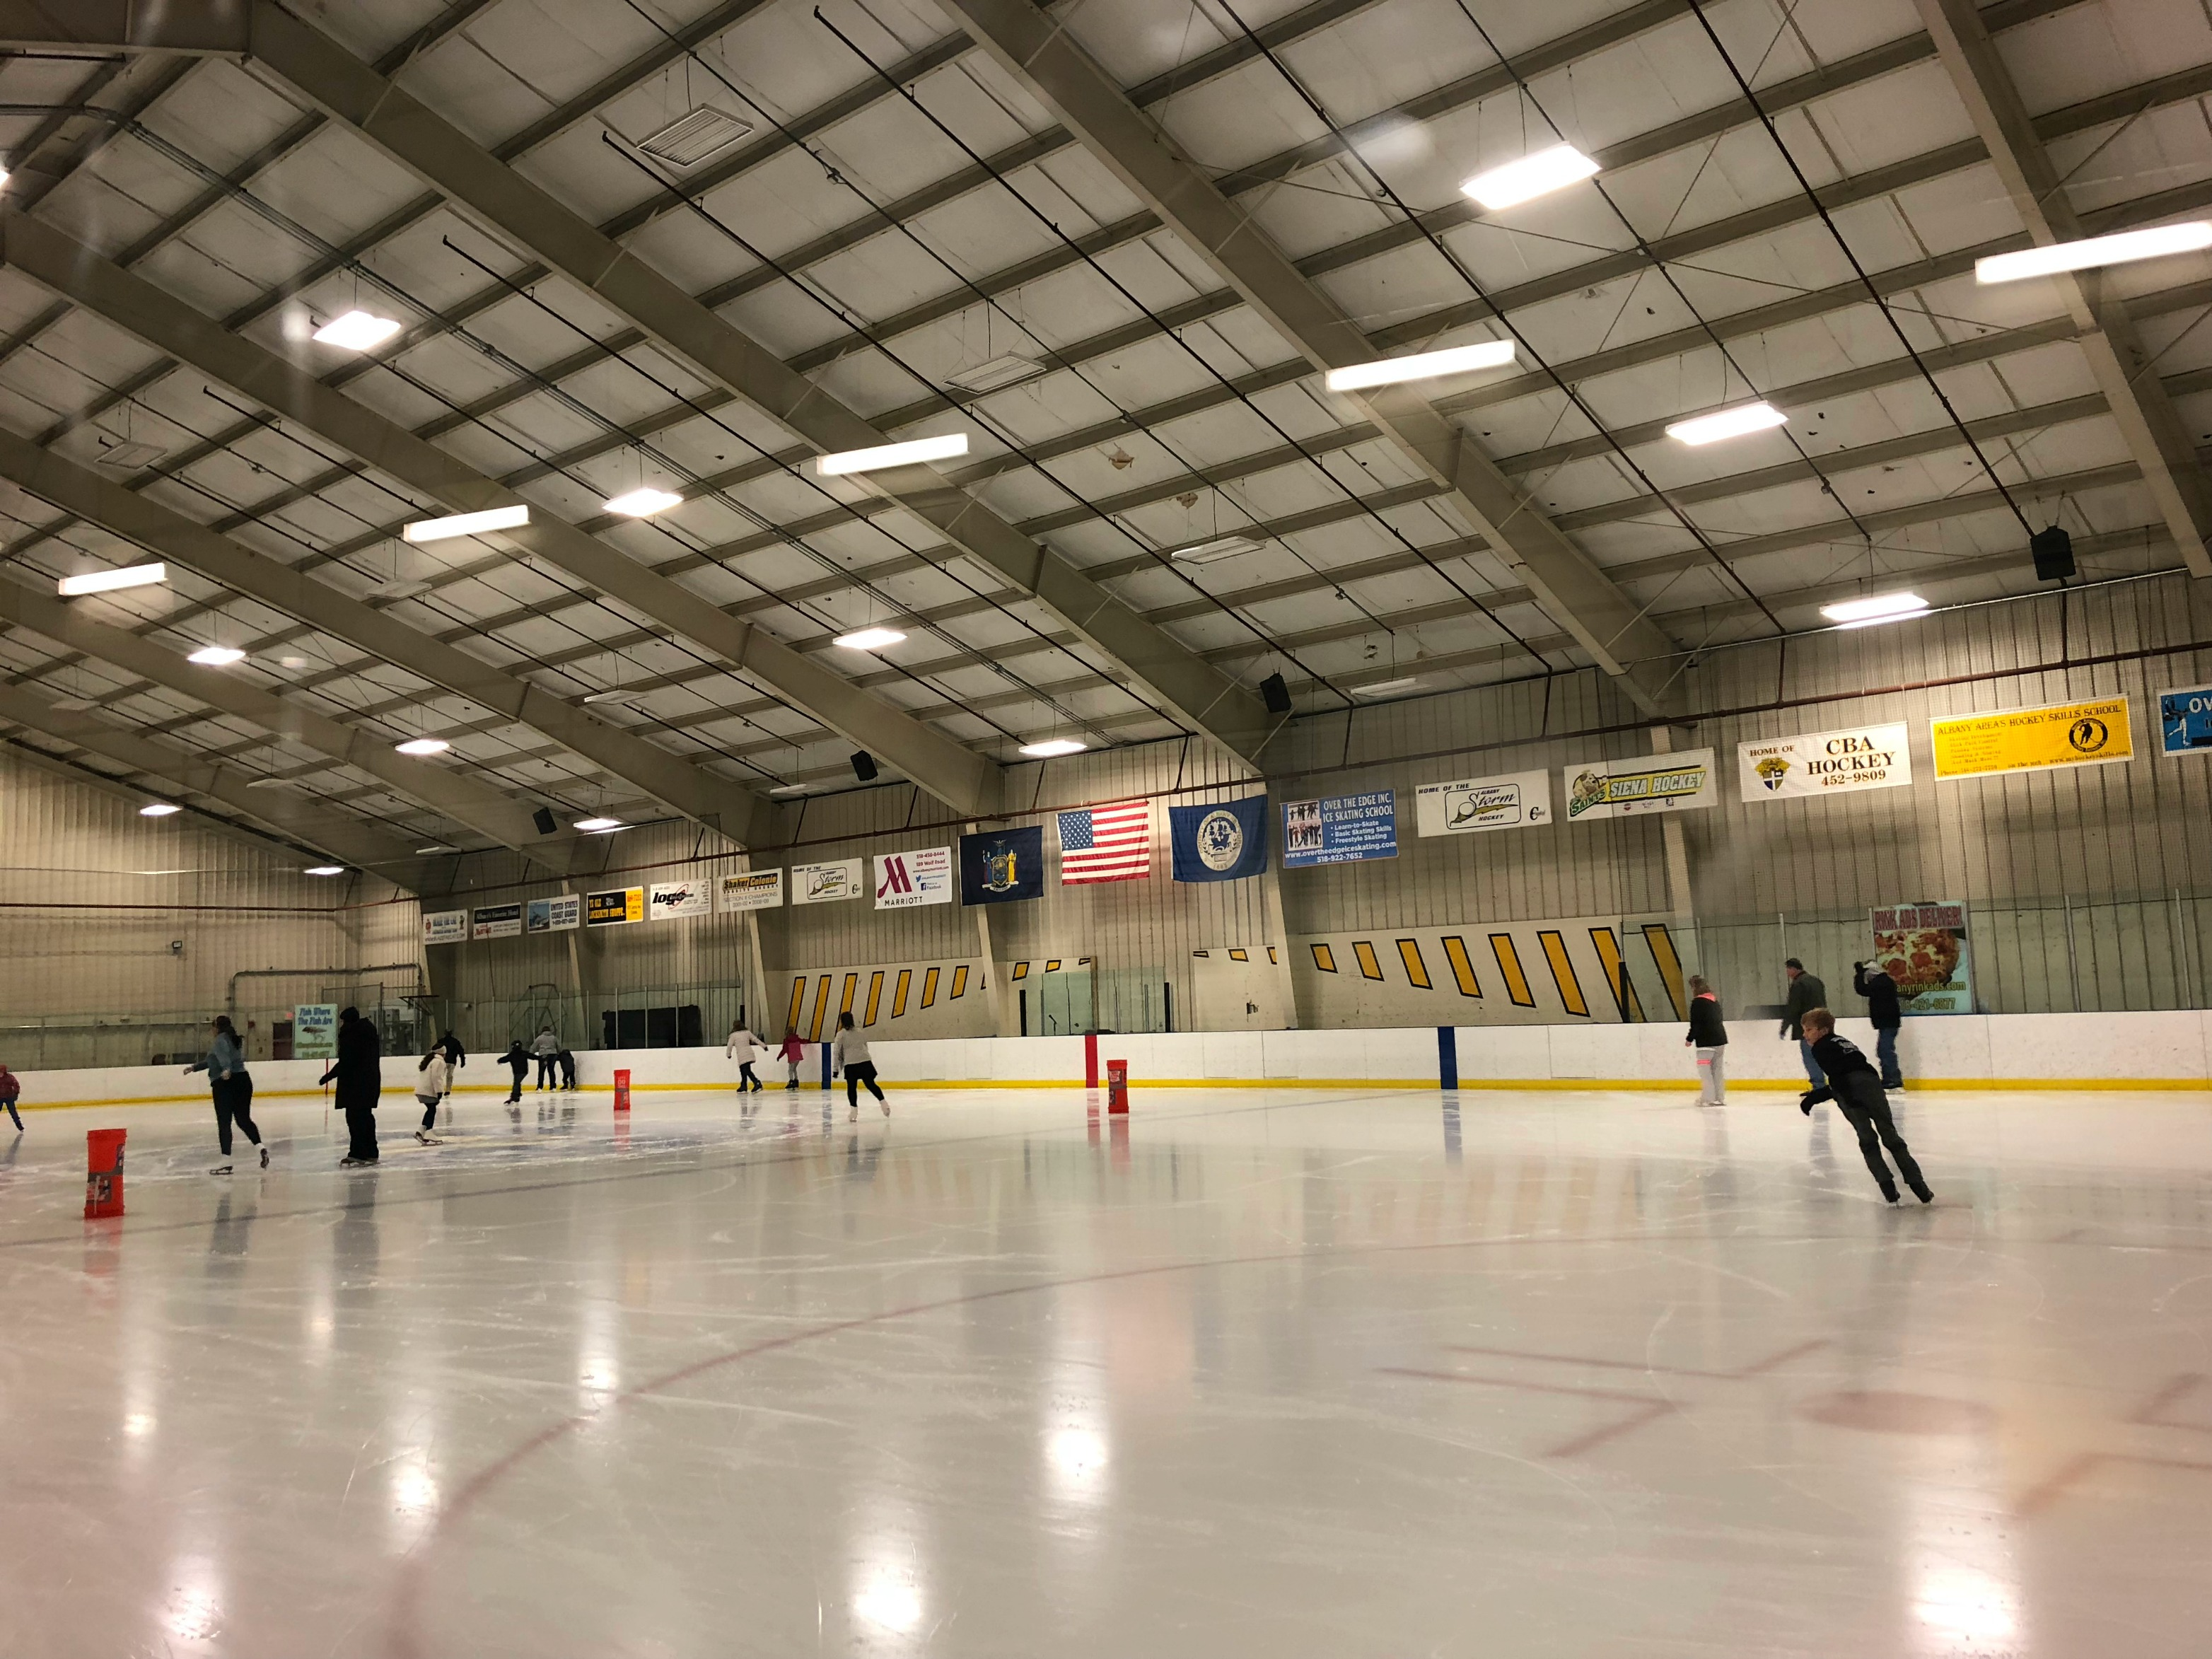 Albany Hockey Ice skating